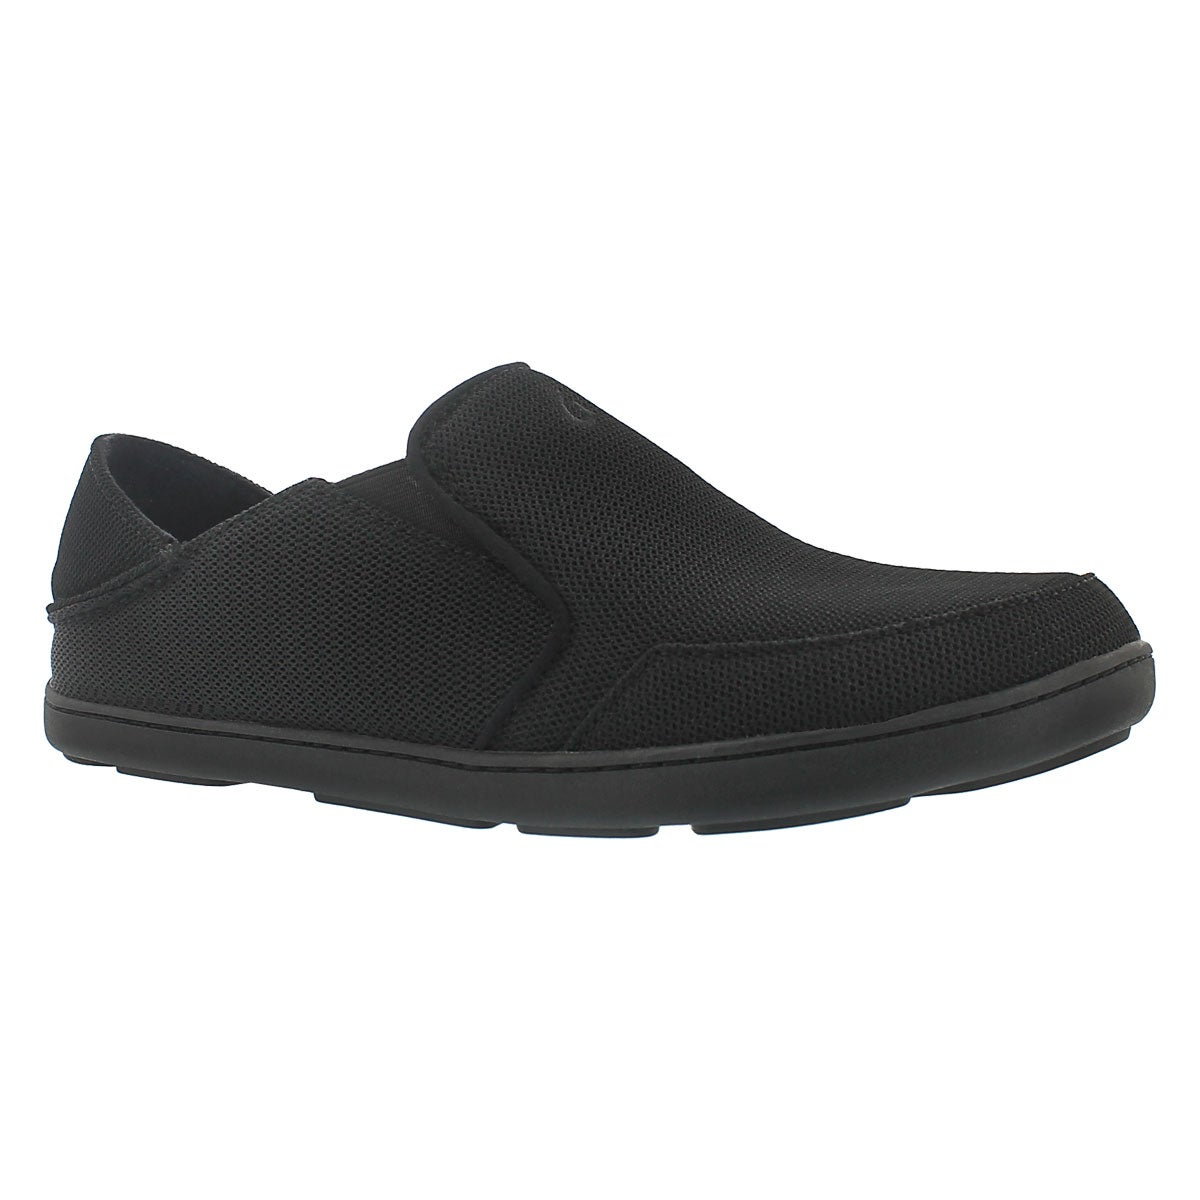 Men's NOHEA MESH onyx slip on casual shoes